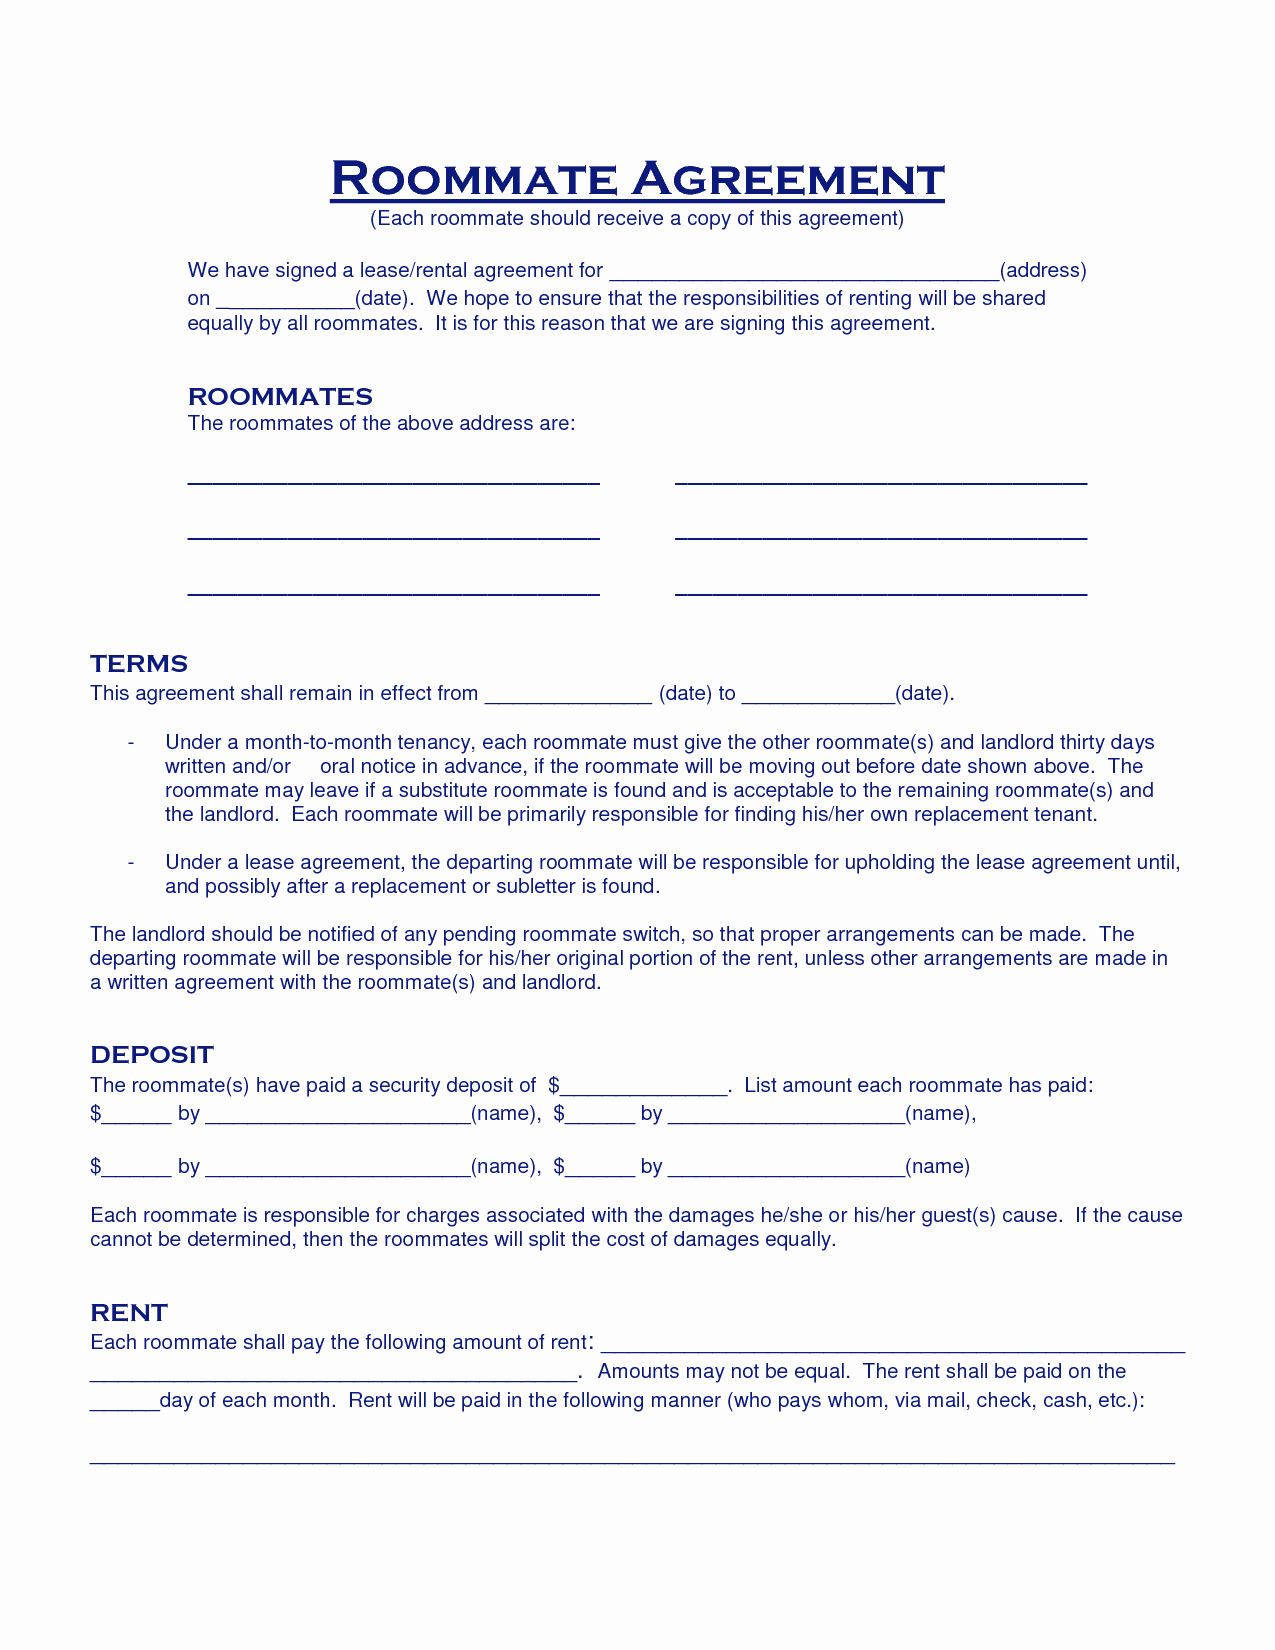 Roommate Rental Agreement Template Unique Roommate Agreement Template